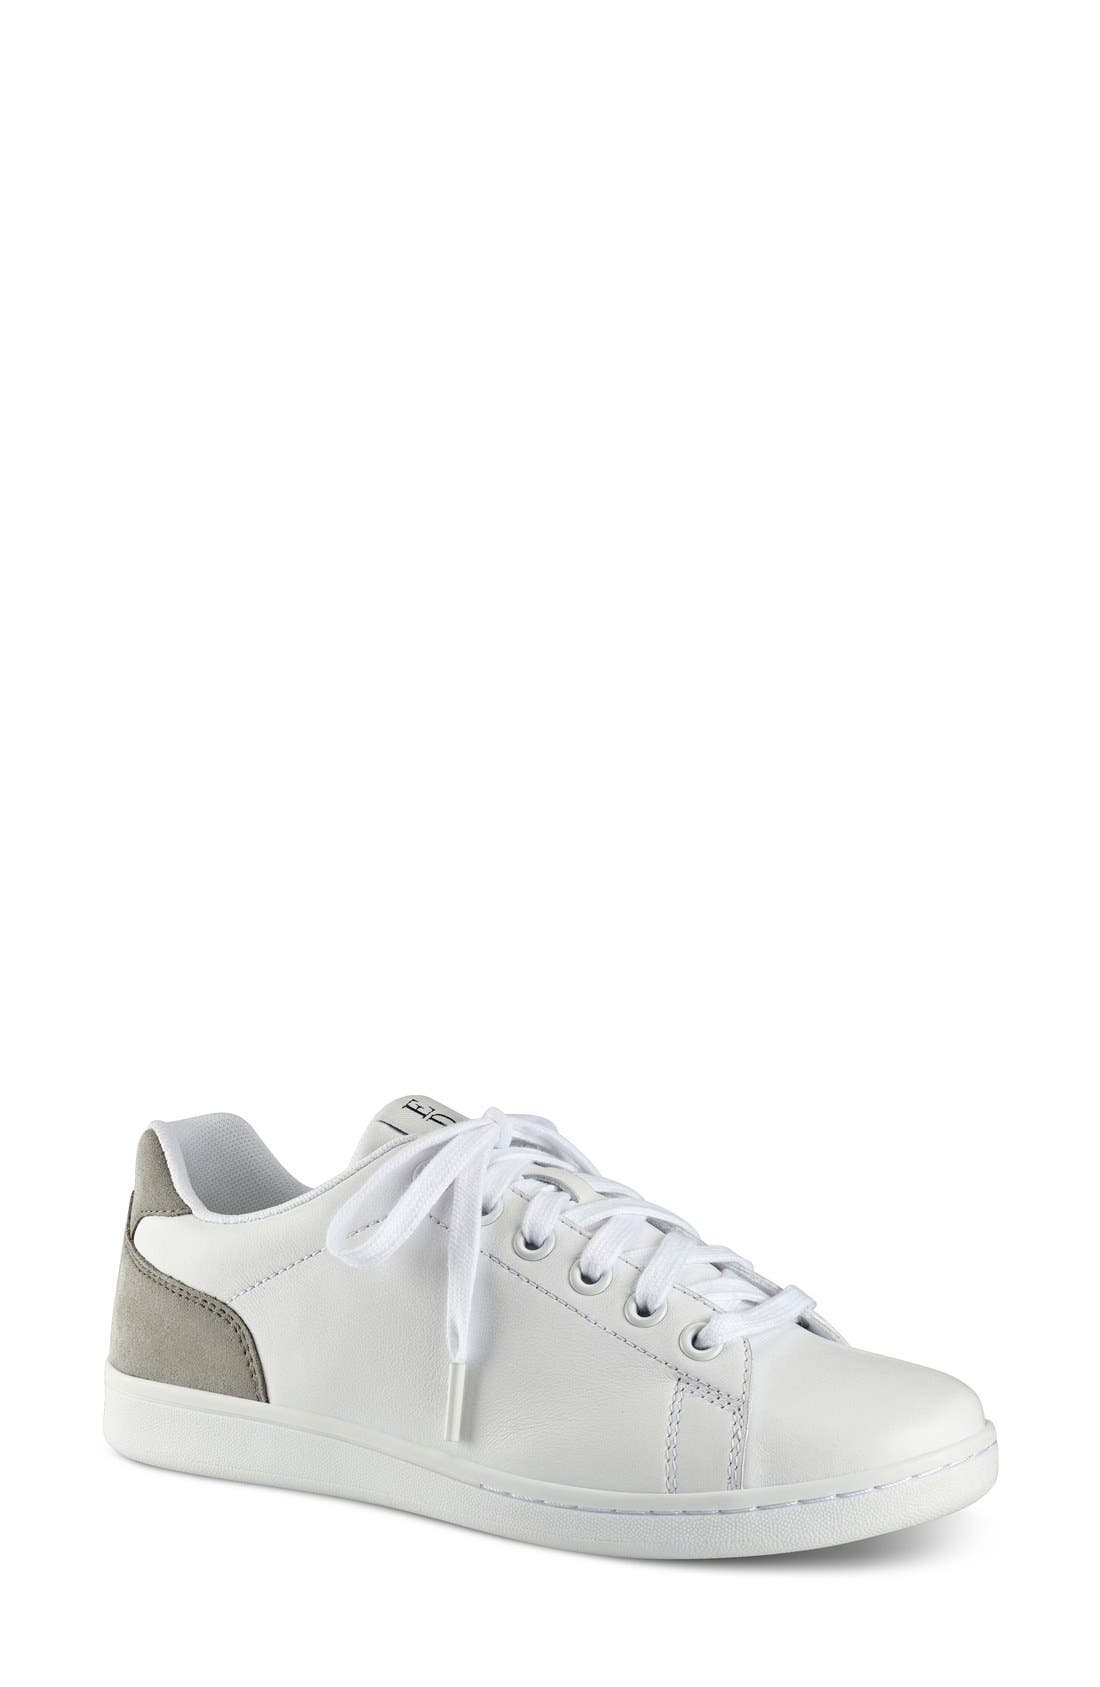 'Chapala' Sneaker,                             Main thumbnail 1, color,                             PURE WHITE LEATHER/ STEEL GREY